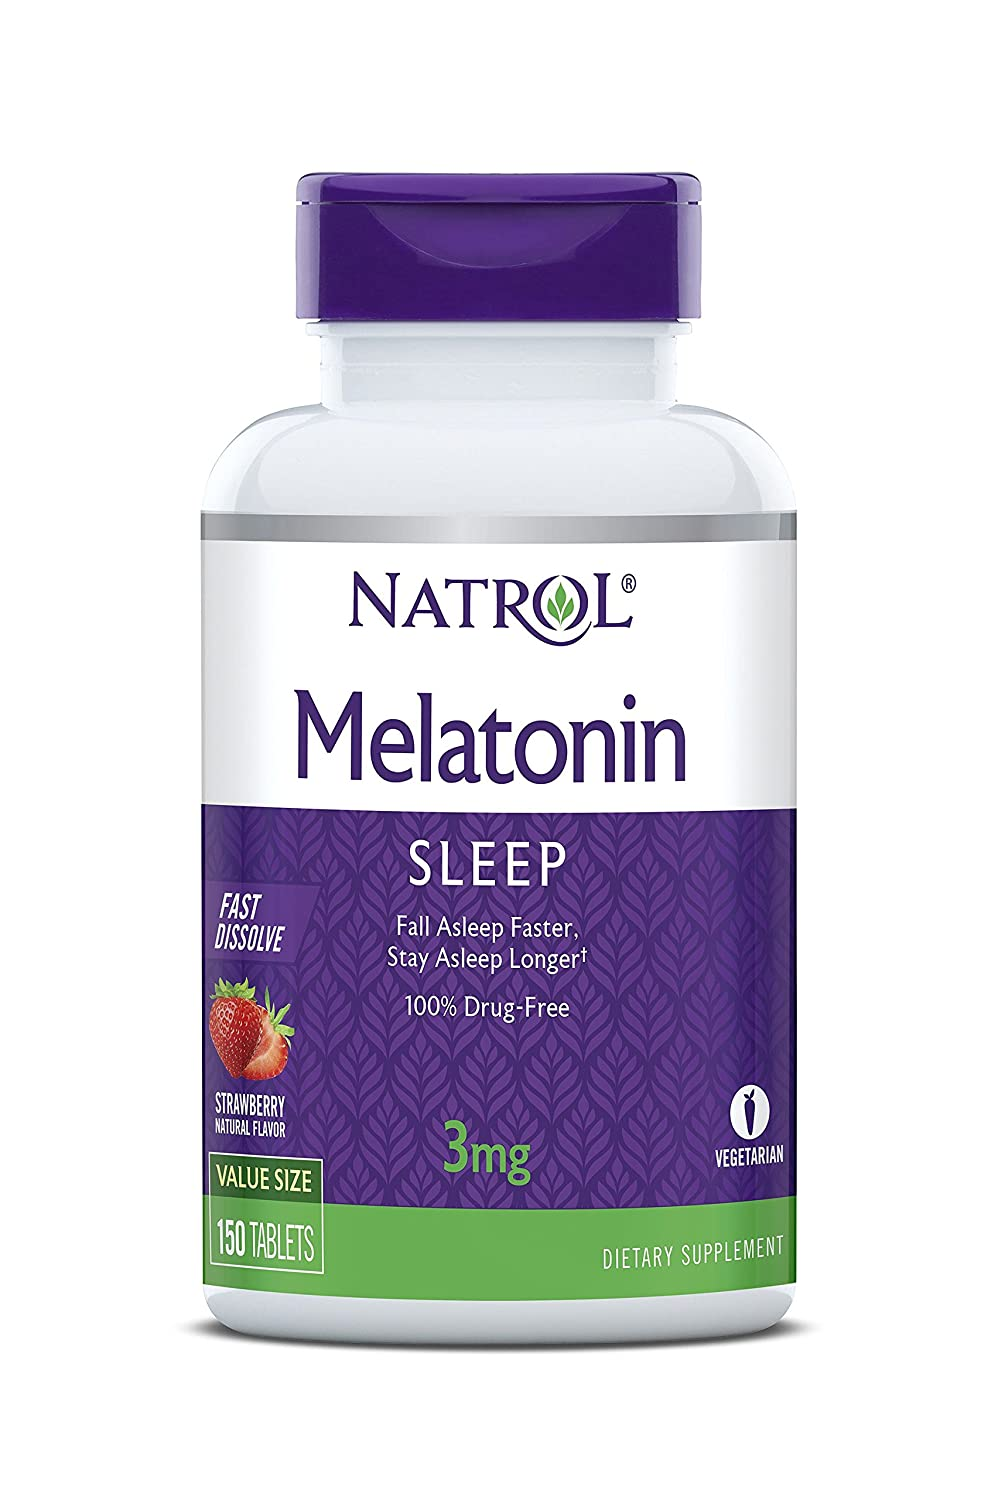 Natrol Melatonin Fast Dissolve Tablets, Helps You Fall Asleep Faster, Stay Asleep Longer, Easy to Take, Dissolves in Mouth, Faster Absorption, 3mg, 150 Count